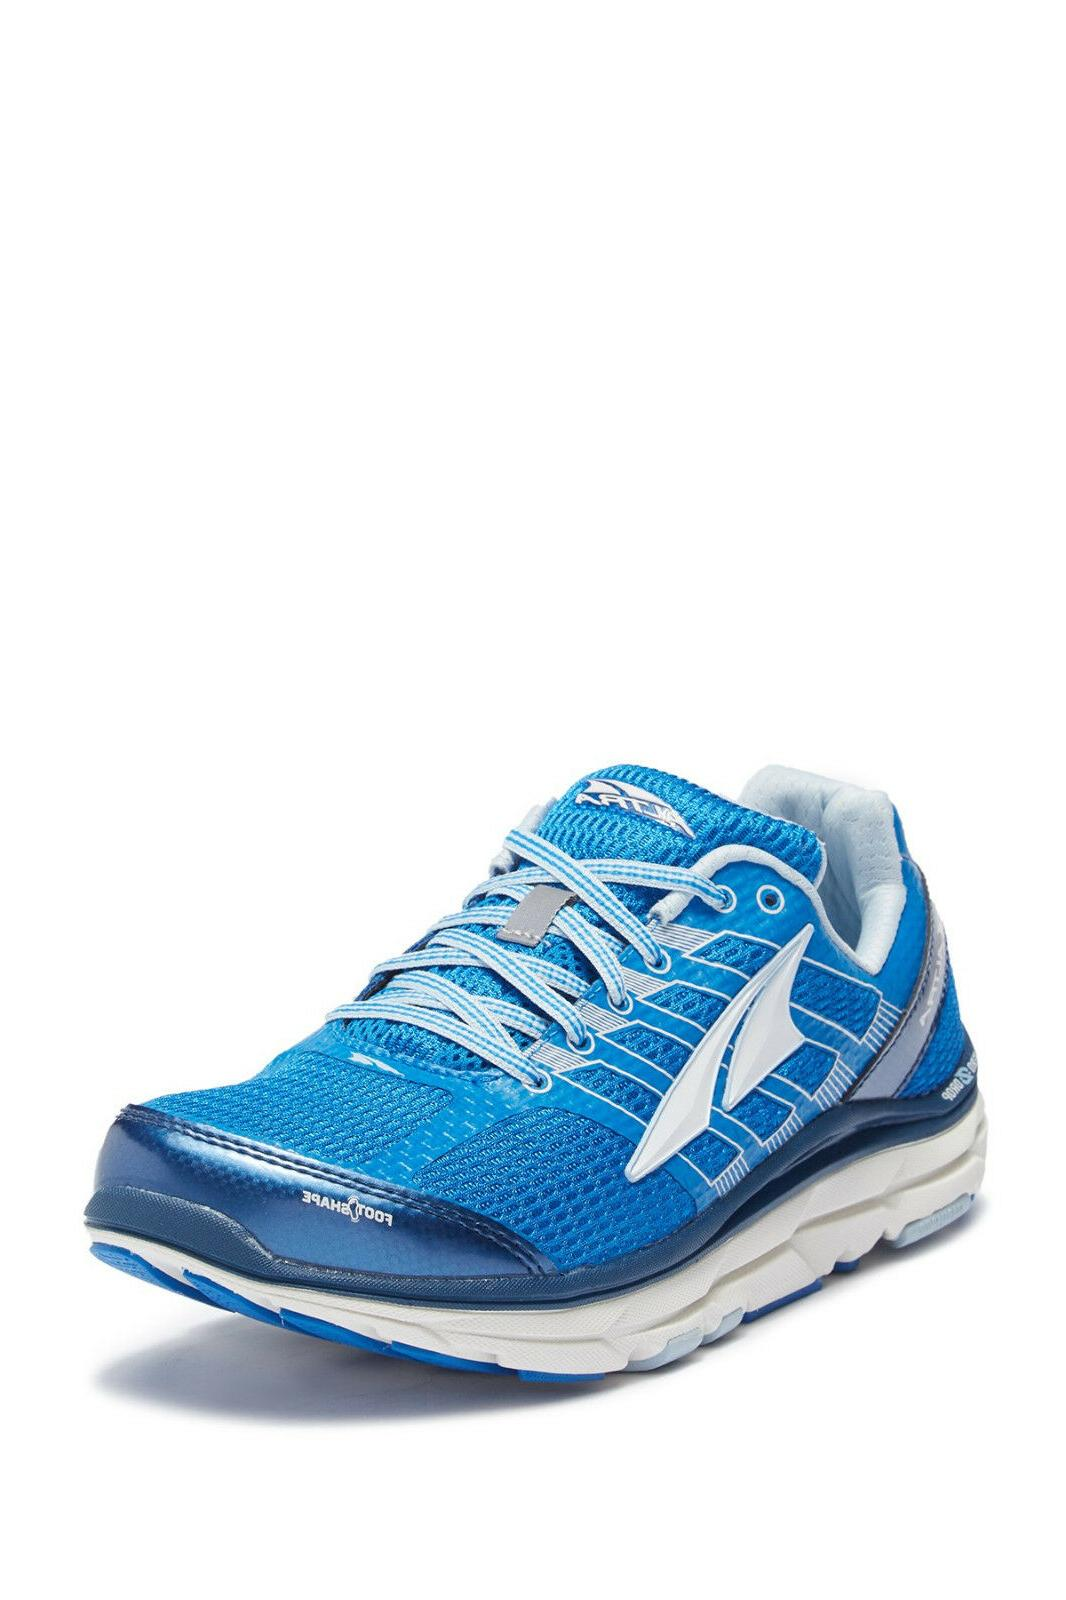 provision 3 0 running shoes men s